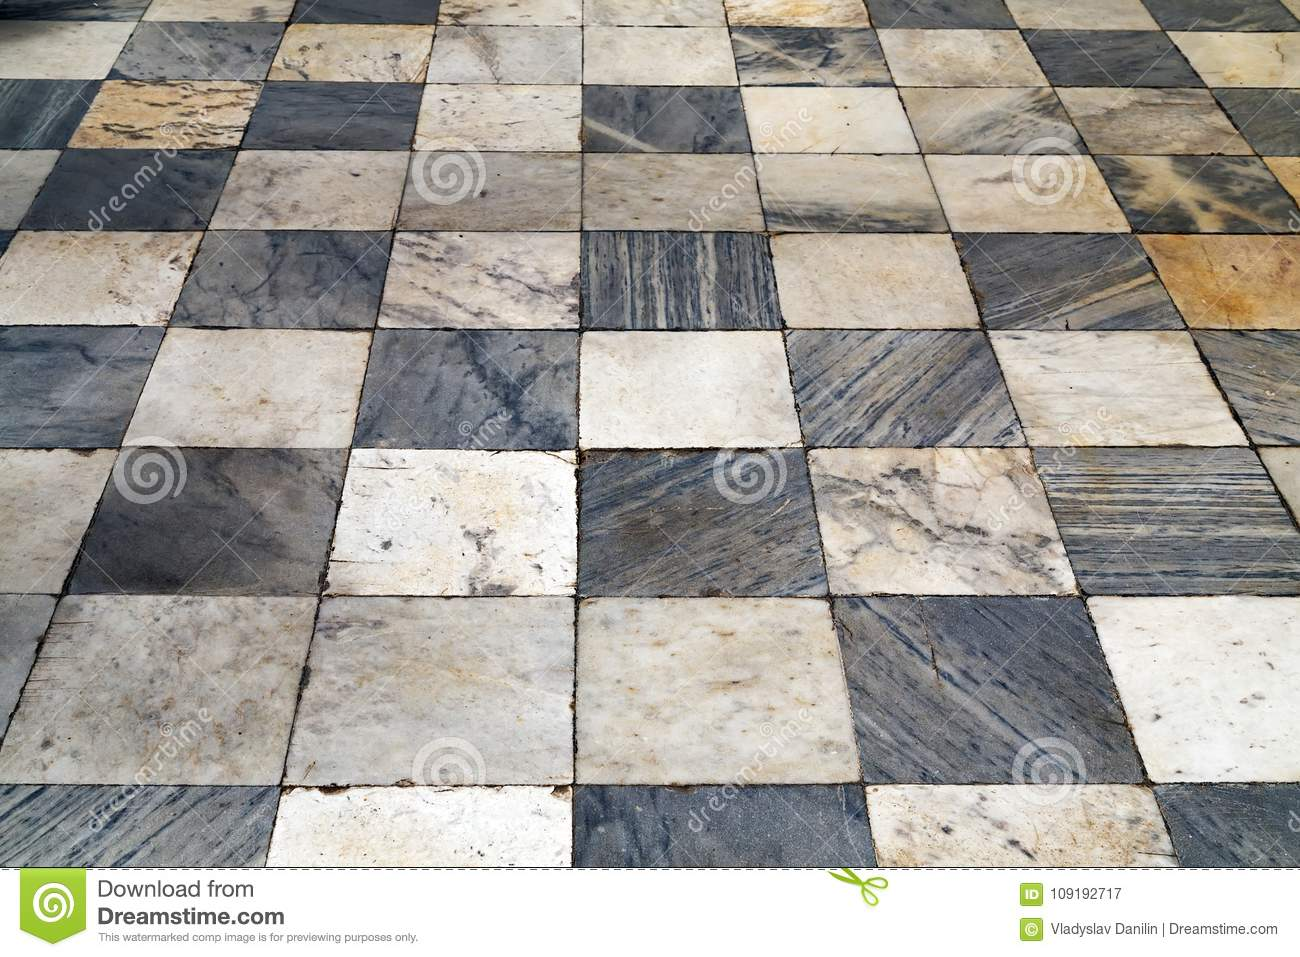 Granite Floor Tile Marble Samples For Texture Background Floor B Stock Image Image Of Gray Architecture 109192717